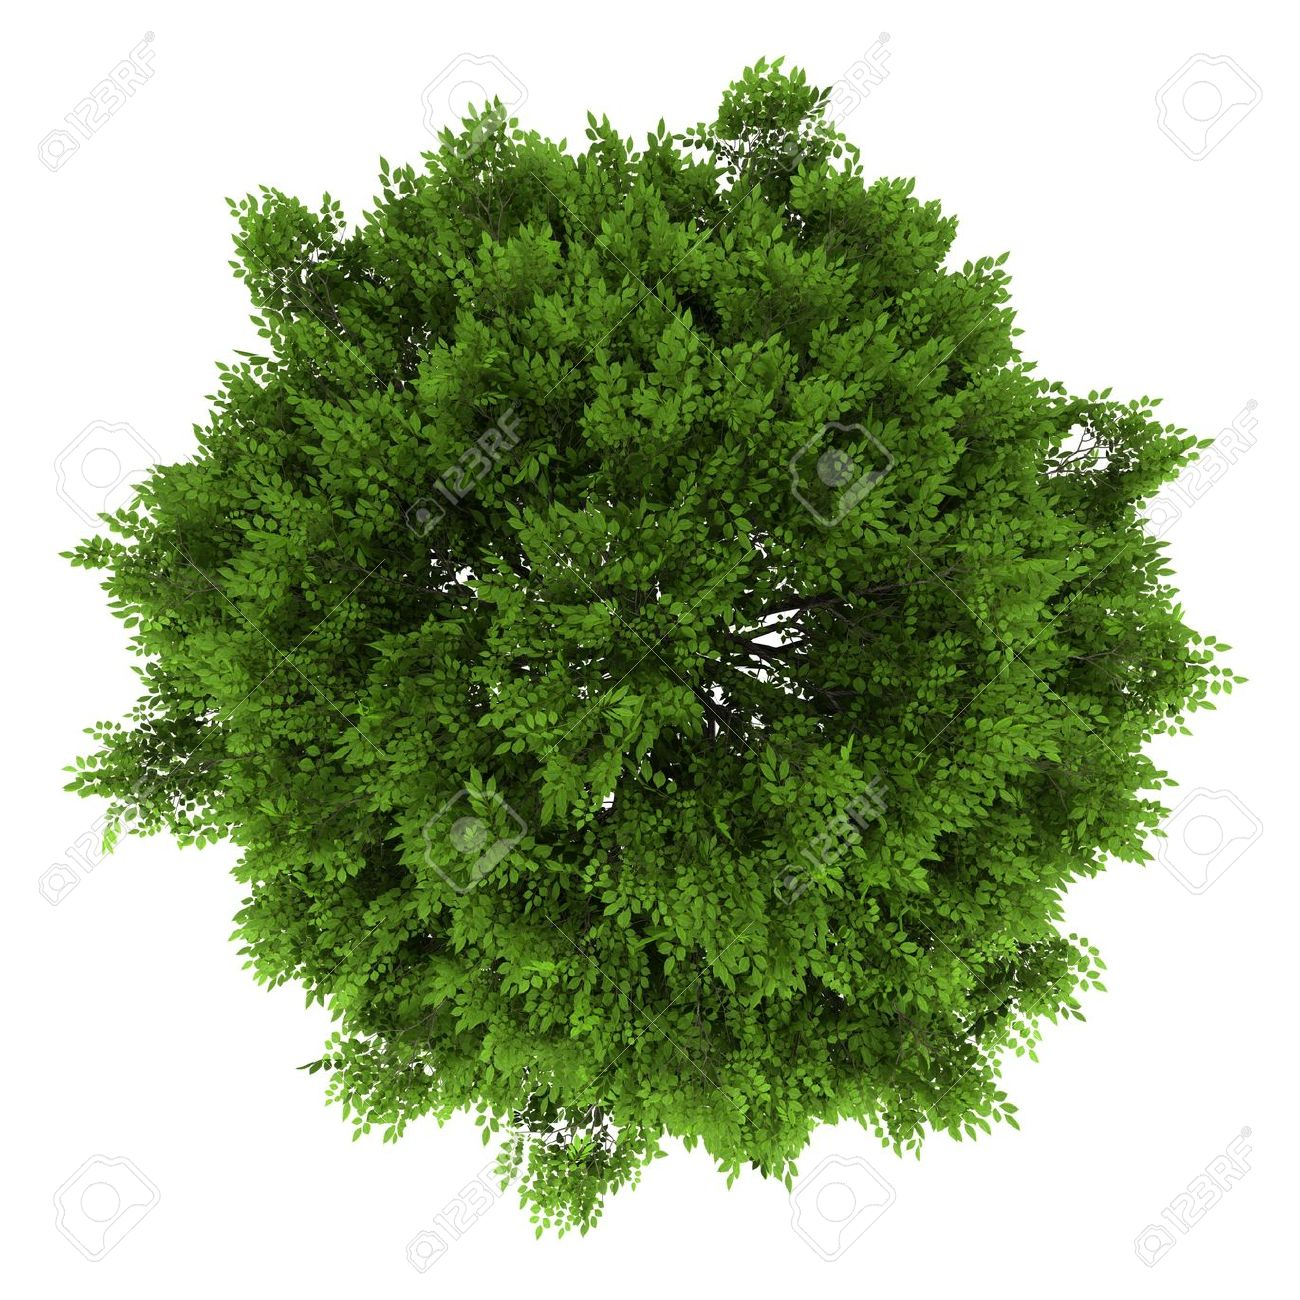 1300x1300 Tree Png Top View Transparent Tree Top View.png Images. Pluspng